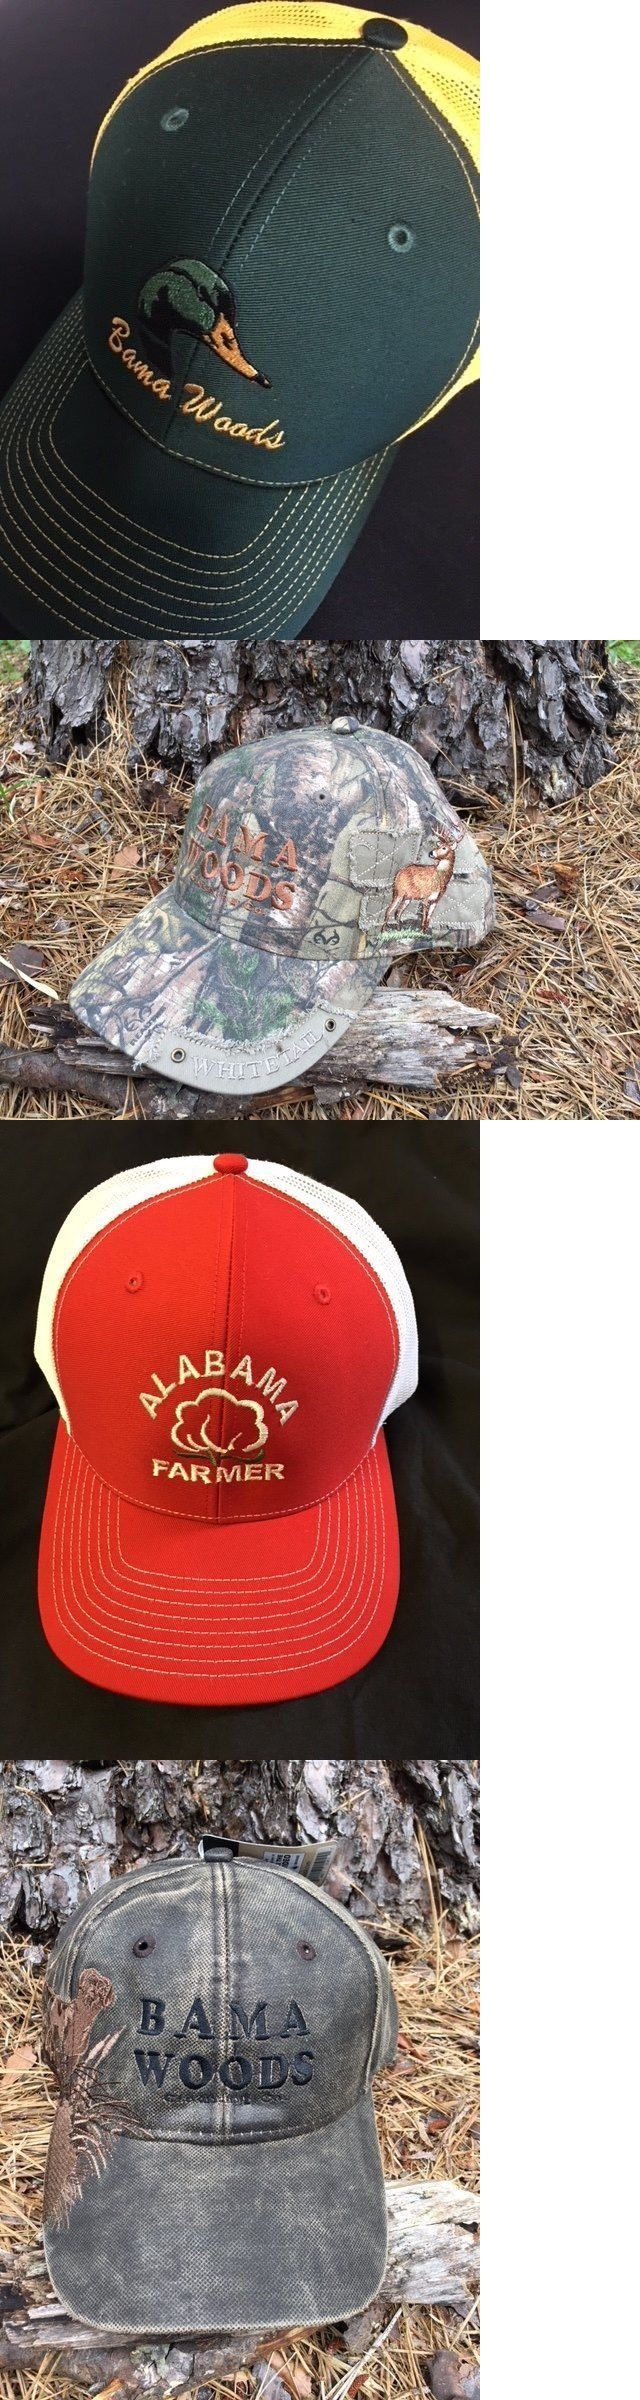 Clothing Shoes and Accessories 36239  Alabama Hat Bama Woods Hunting Cap  Dri Duck Mossy Oak Camo Deer Duck Fish Turkey -  BUY IT NOW ONLY   12 on  eBay! 9b714a643356